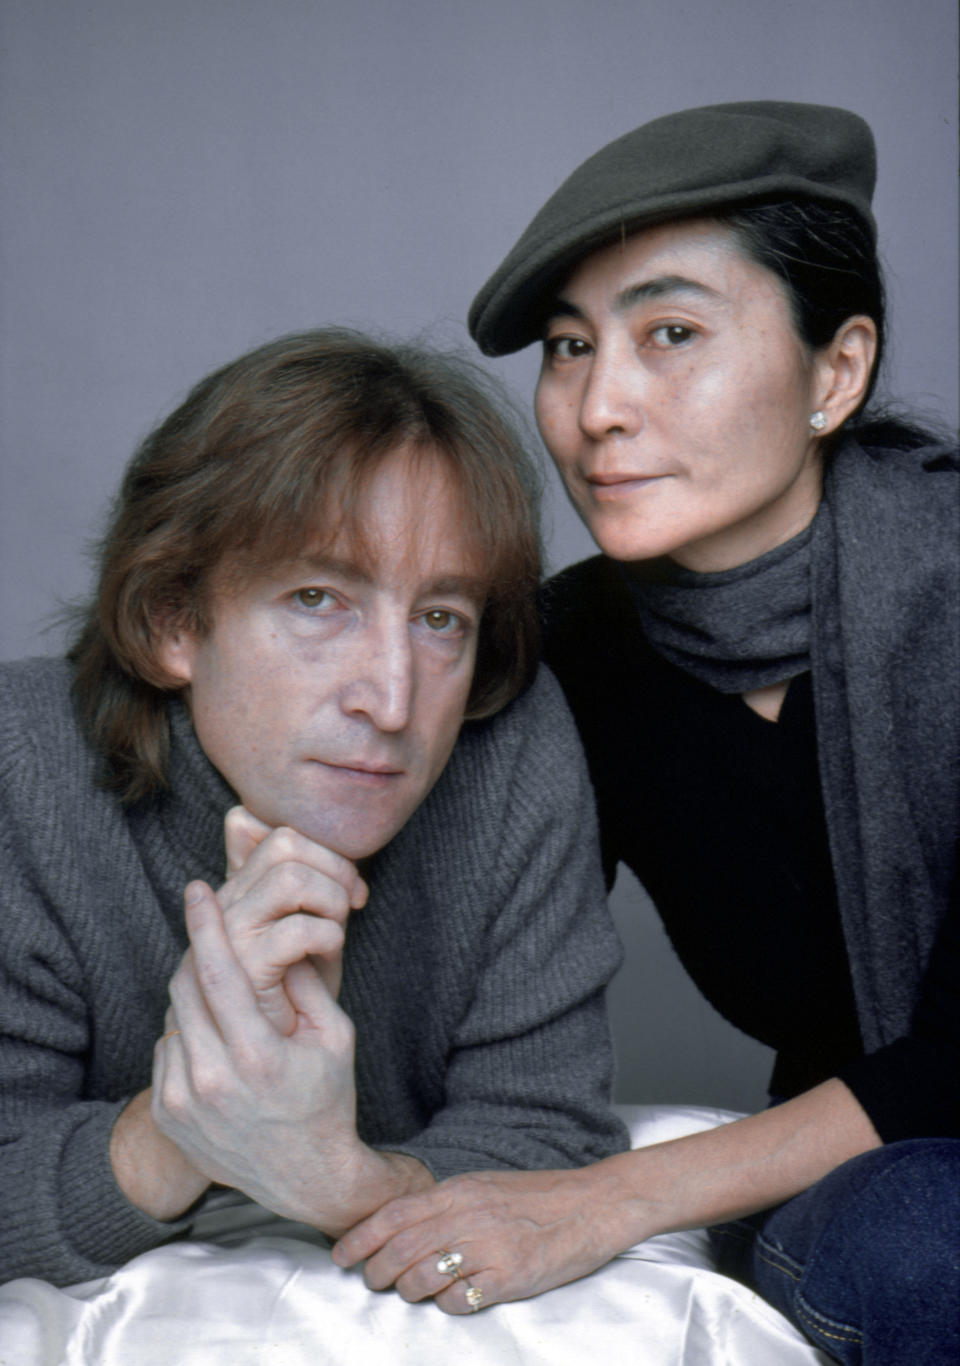 <p>Both Lennon and Ono were married when they began their relationship and eventually married in 1969. From their infamous Bed-ins to their eccentric personalities- Lennon and Ono remain one of the most iconic couples in music history. <em>(Image via Getty Images)</em></p>